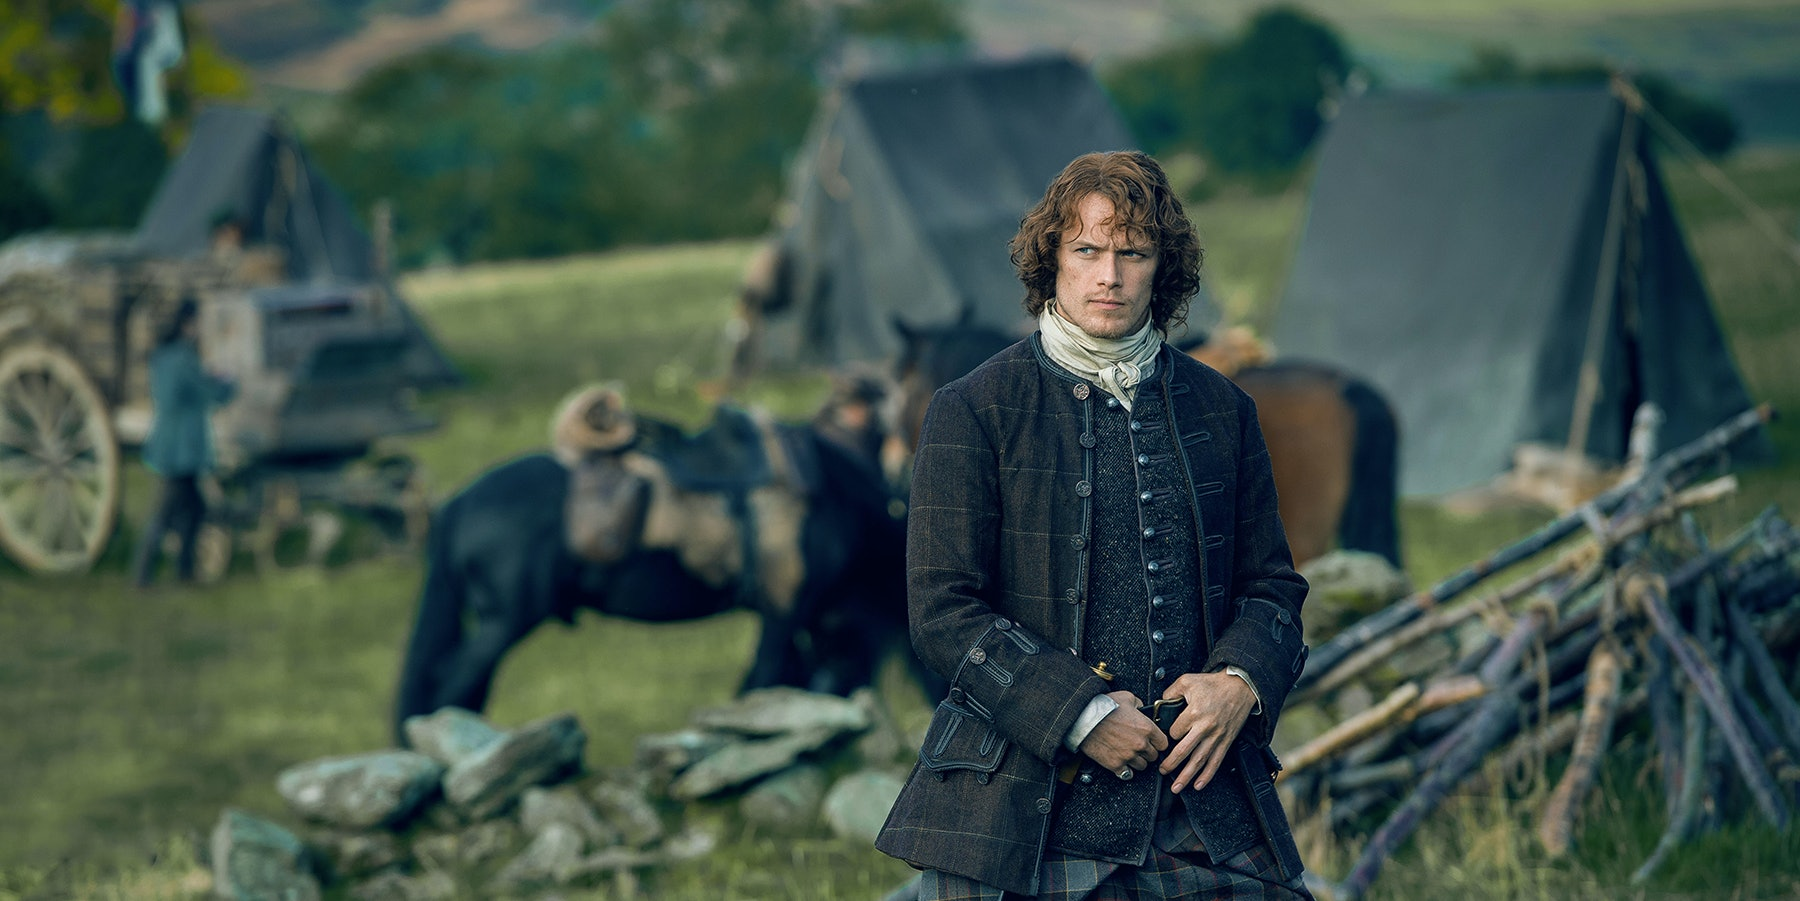 'Outlander' Season 3 Approaches a Plot Point That Could Break It